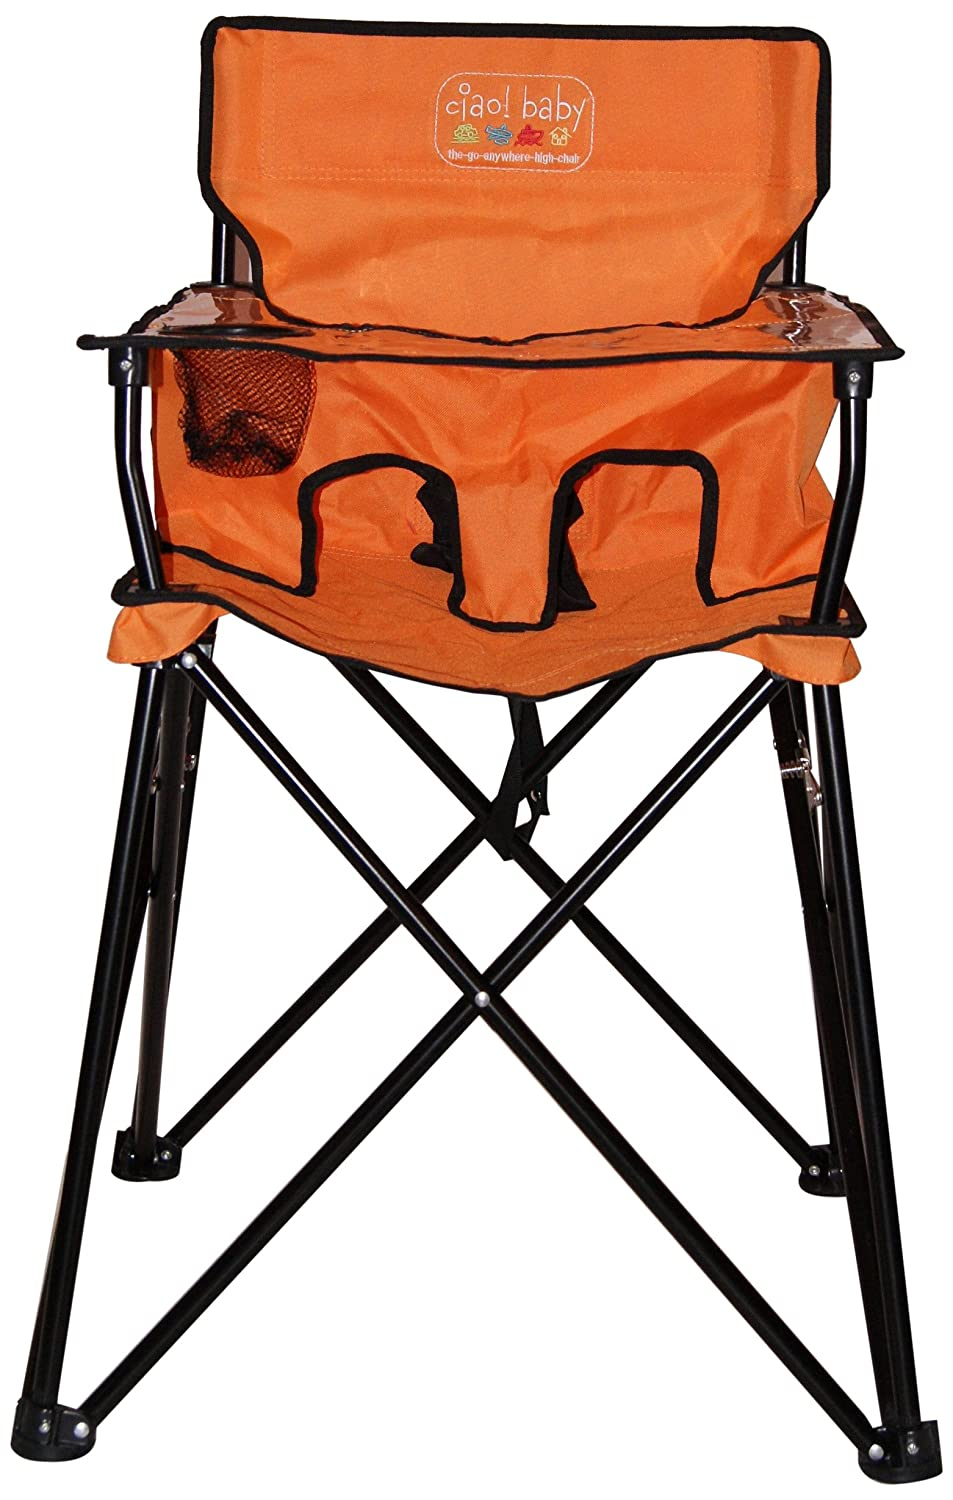 Amazon.com : Ciao! Baby Portable Highchair, Orange : Childrens Highchairs :  Baby